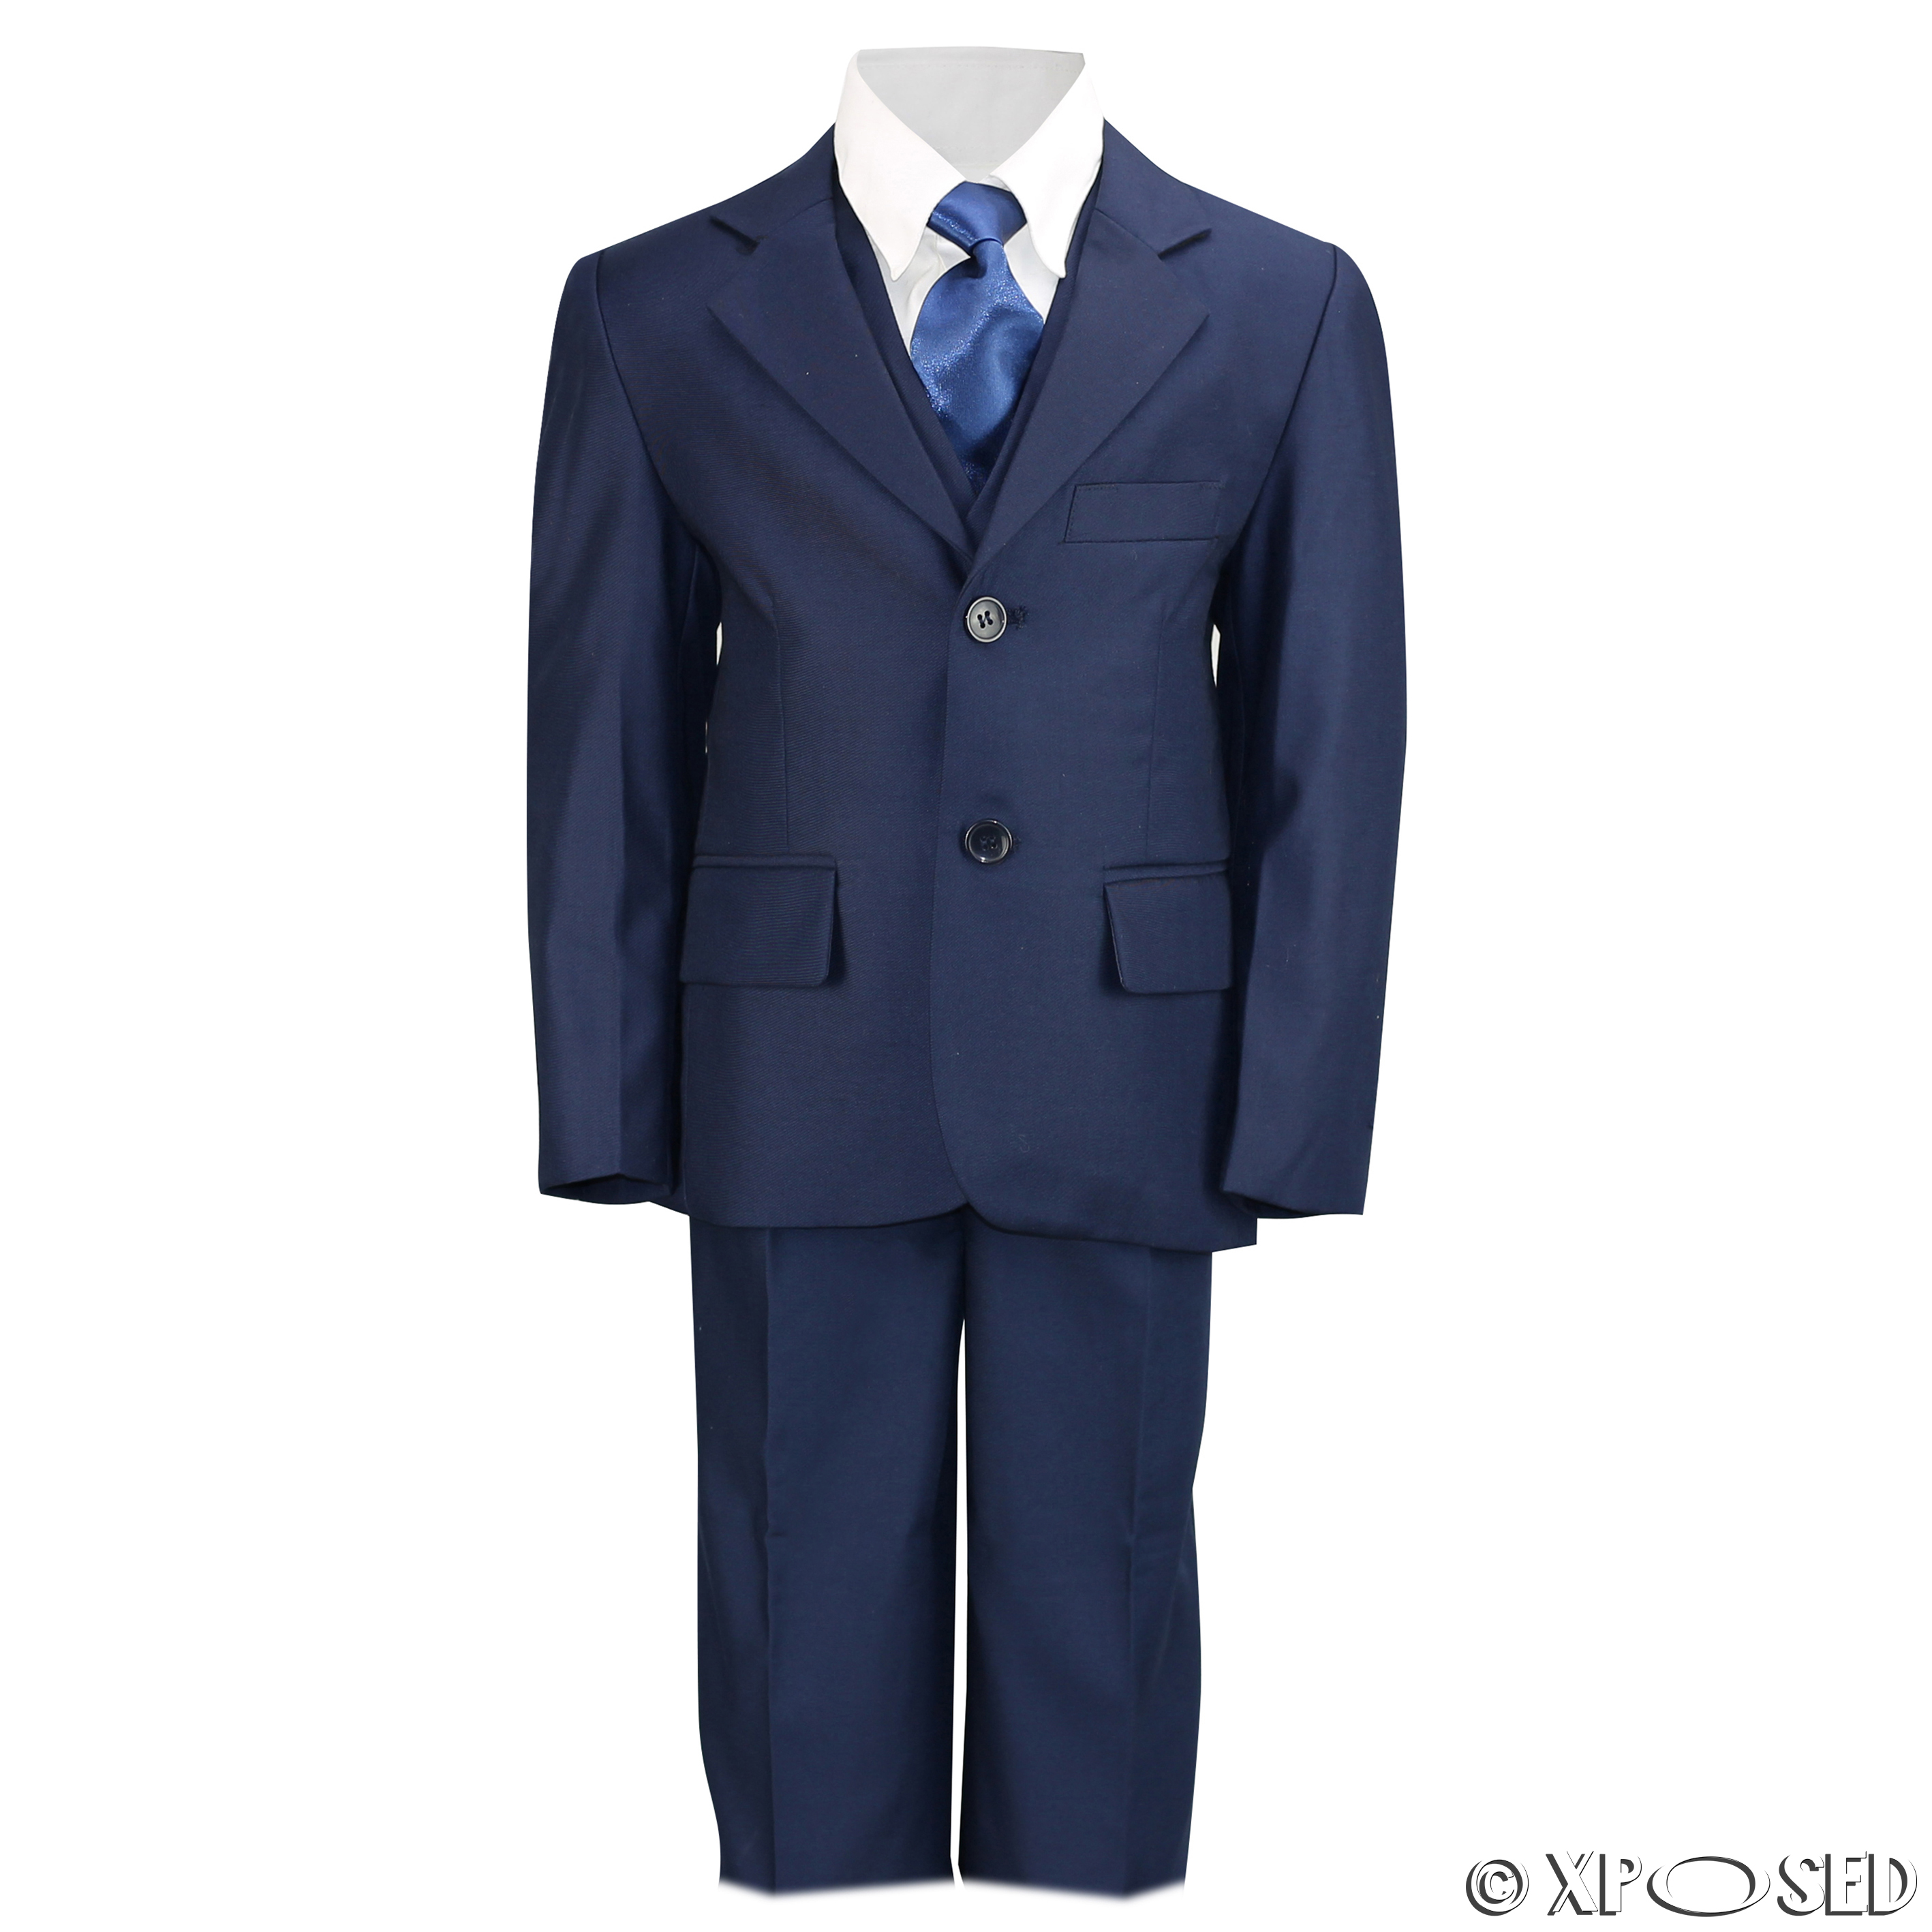 Macy's has Linen Three-Piece Suits and Cotton Three-Piece Suits. Macy's Presents: The Edit - A curated mix of fashion and inspiration Check It Out Free Shipping with $99 purchase + Free Store Pickup.